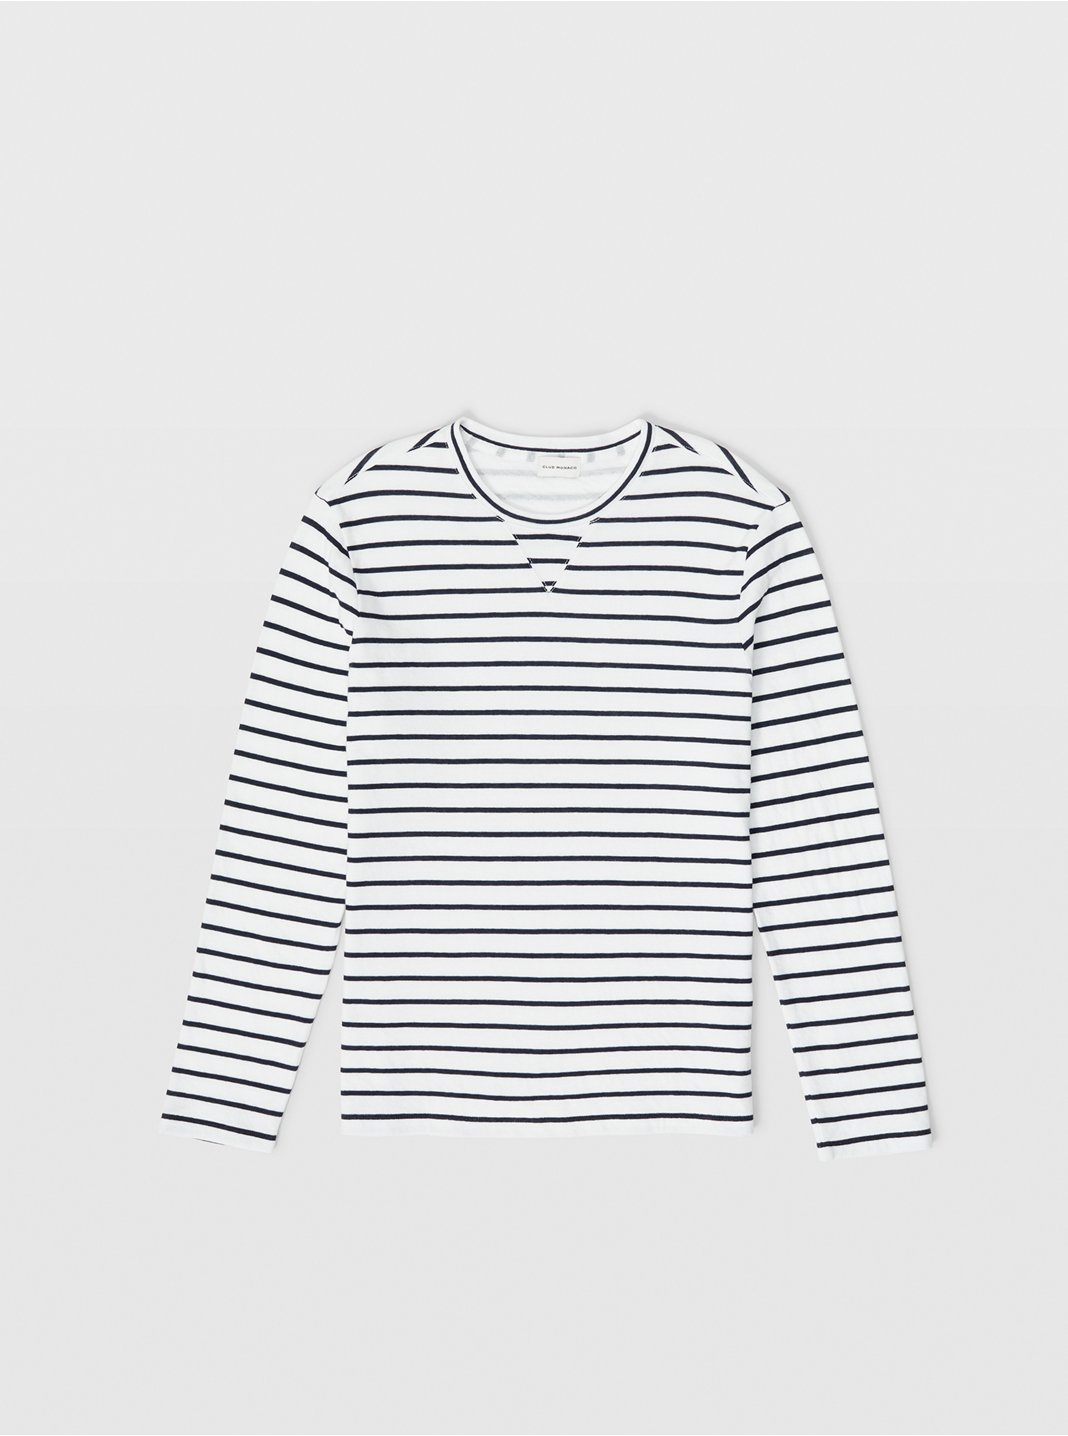 Narrow Stripe Duofold Tee